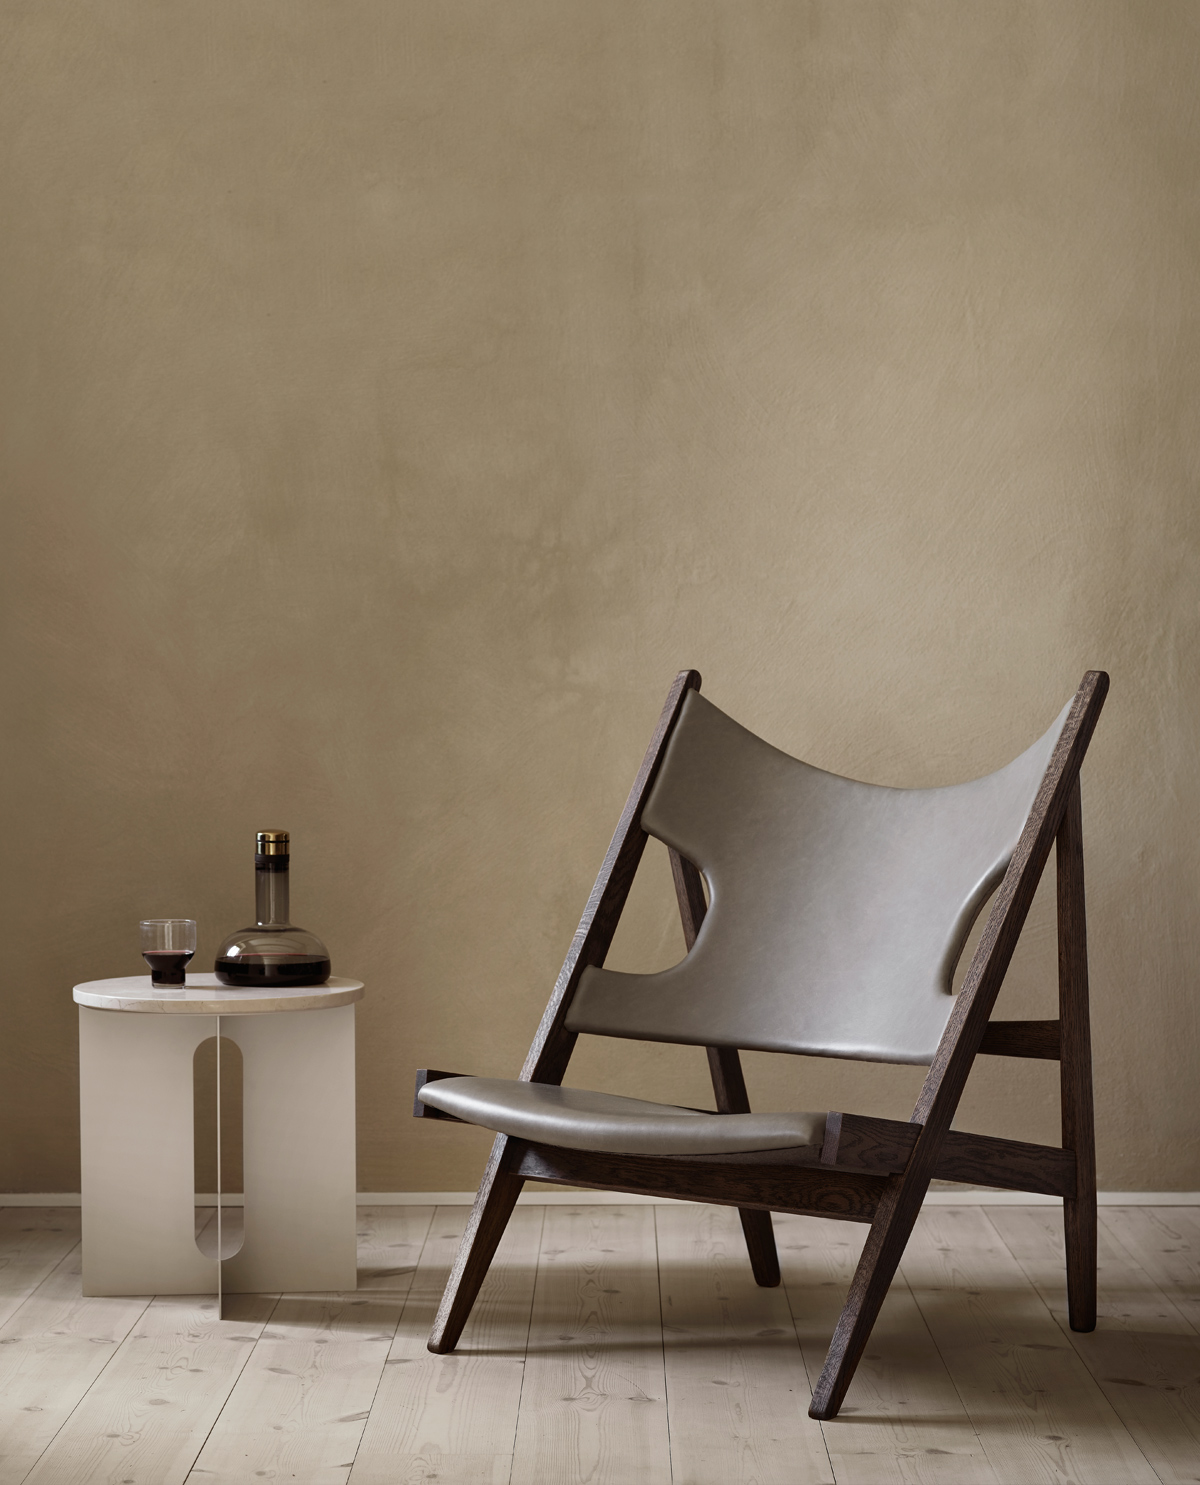 Menu Knitting Chair – Exclusive to Nest.co.uk